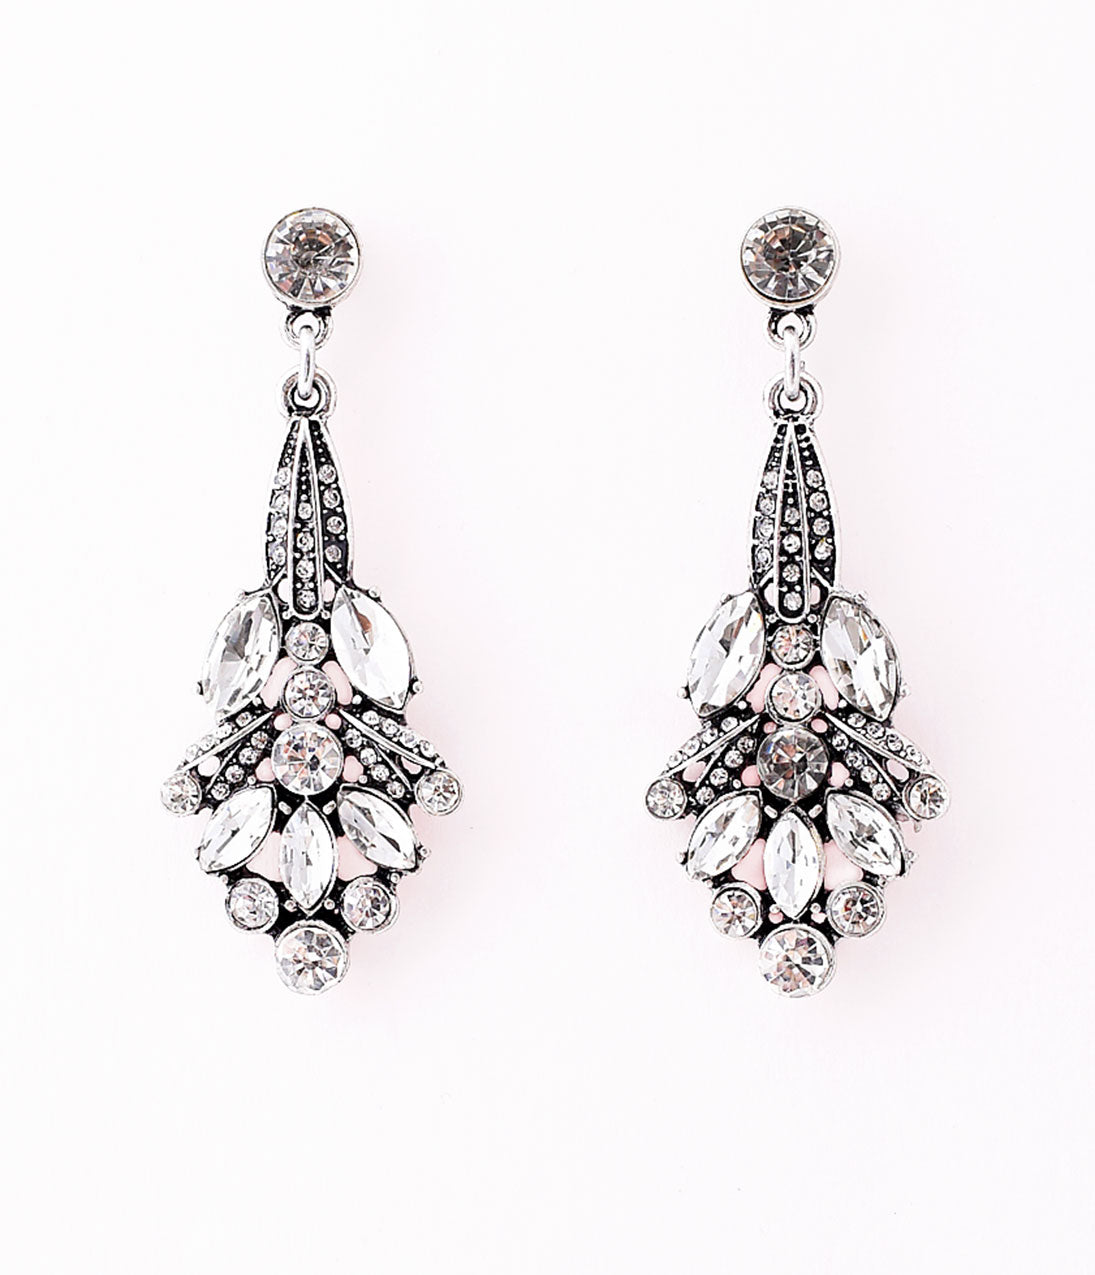 1920s Jewelry Styles History 1920S Style Silver Rhinestone Nouveau Flower Drop Earrings $34.00 AT vintagedancer.com